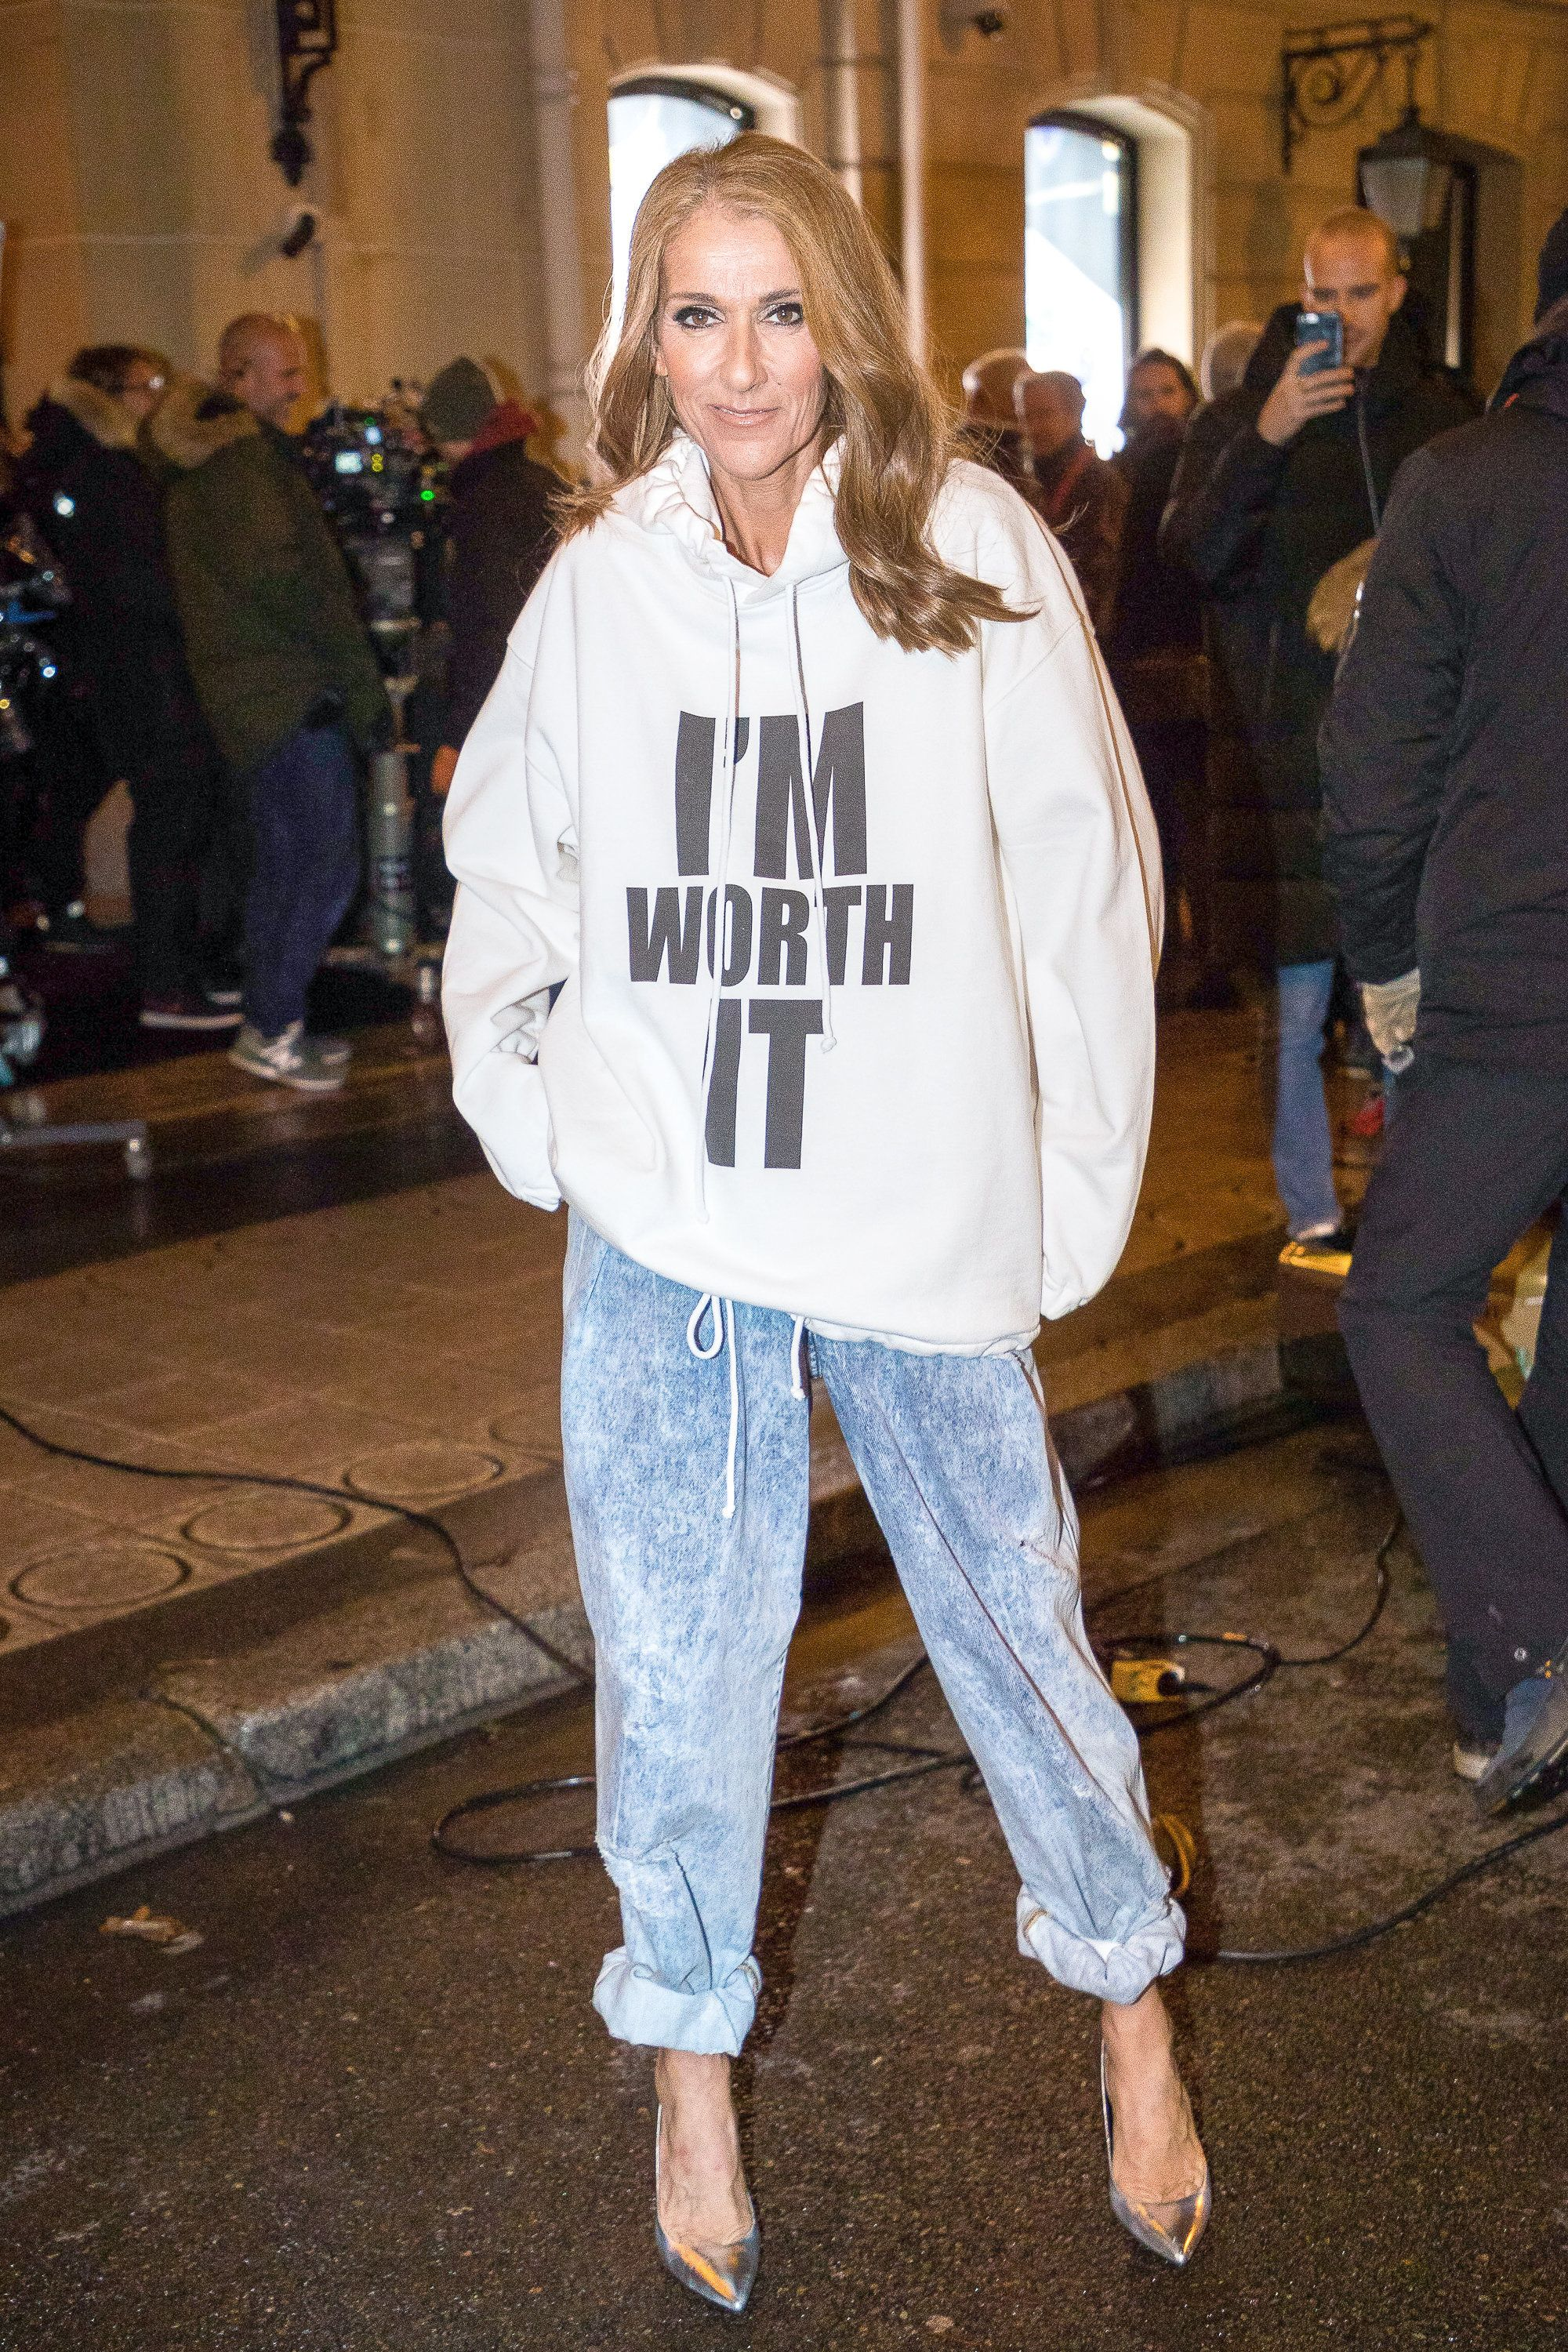 PARIS, FRANCE - JANUARY 30: Singer Celine Dion is seen on the set of 'L'Oreal Excellence' at Hotel Plaza Athenee on Avenue Montaigne on January 30, 2019 in Paris, France. (Photo by Marc Piasecki/GC Images)